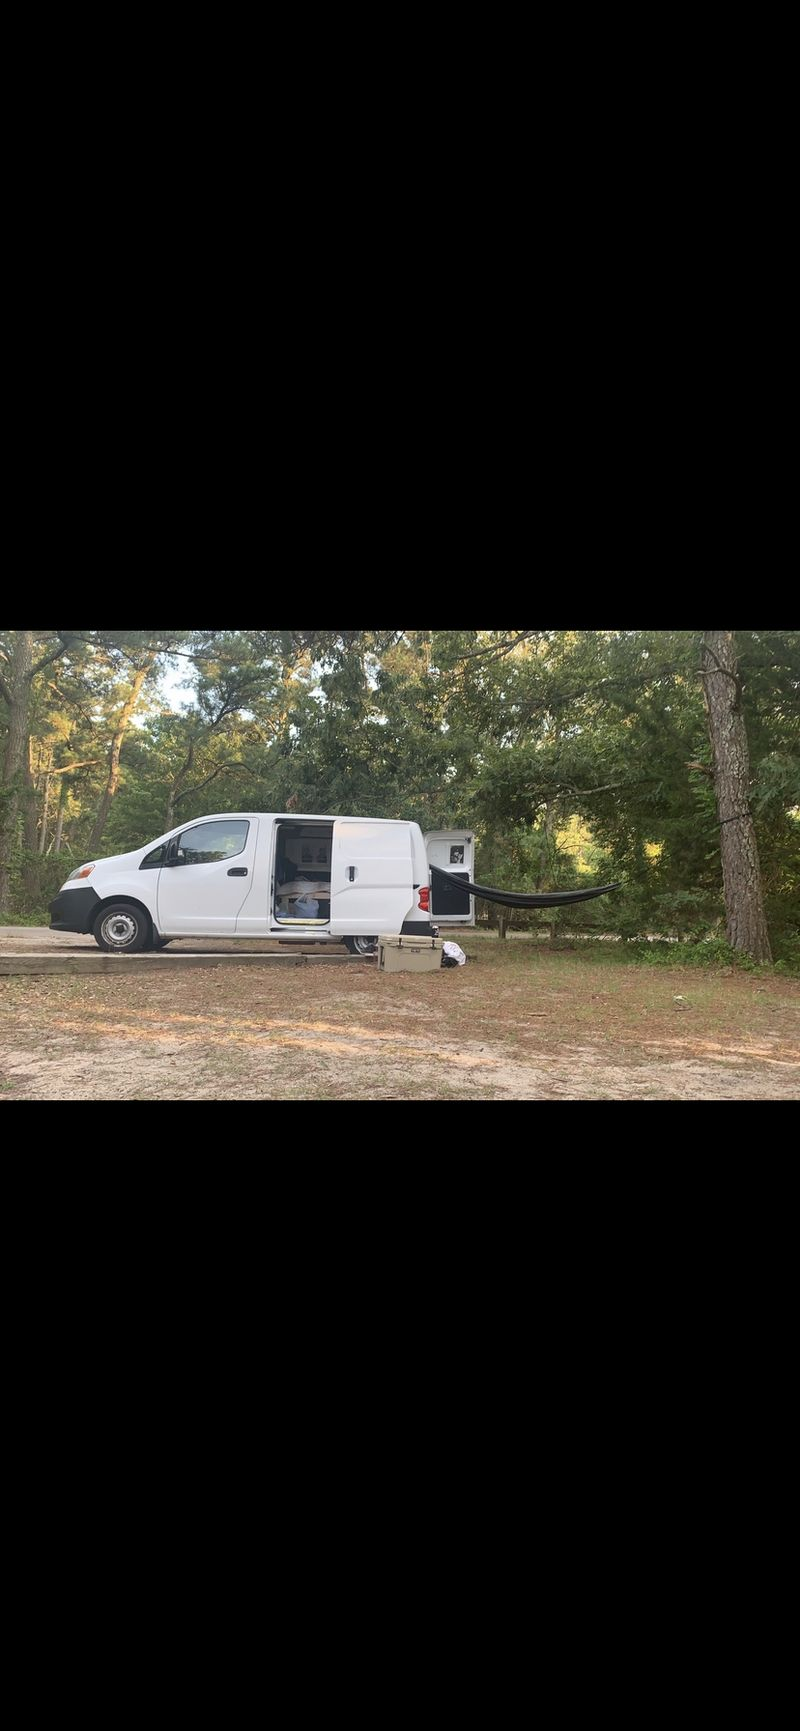 Picture 1/13 of a 2014 Nissan NV200 Campervan for sale in Virginia Beach, Virginia